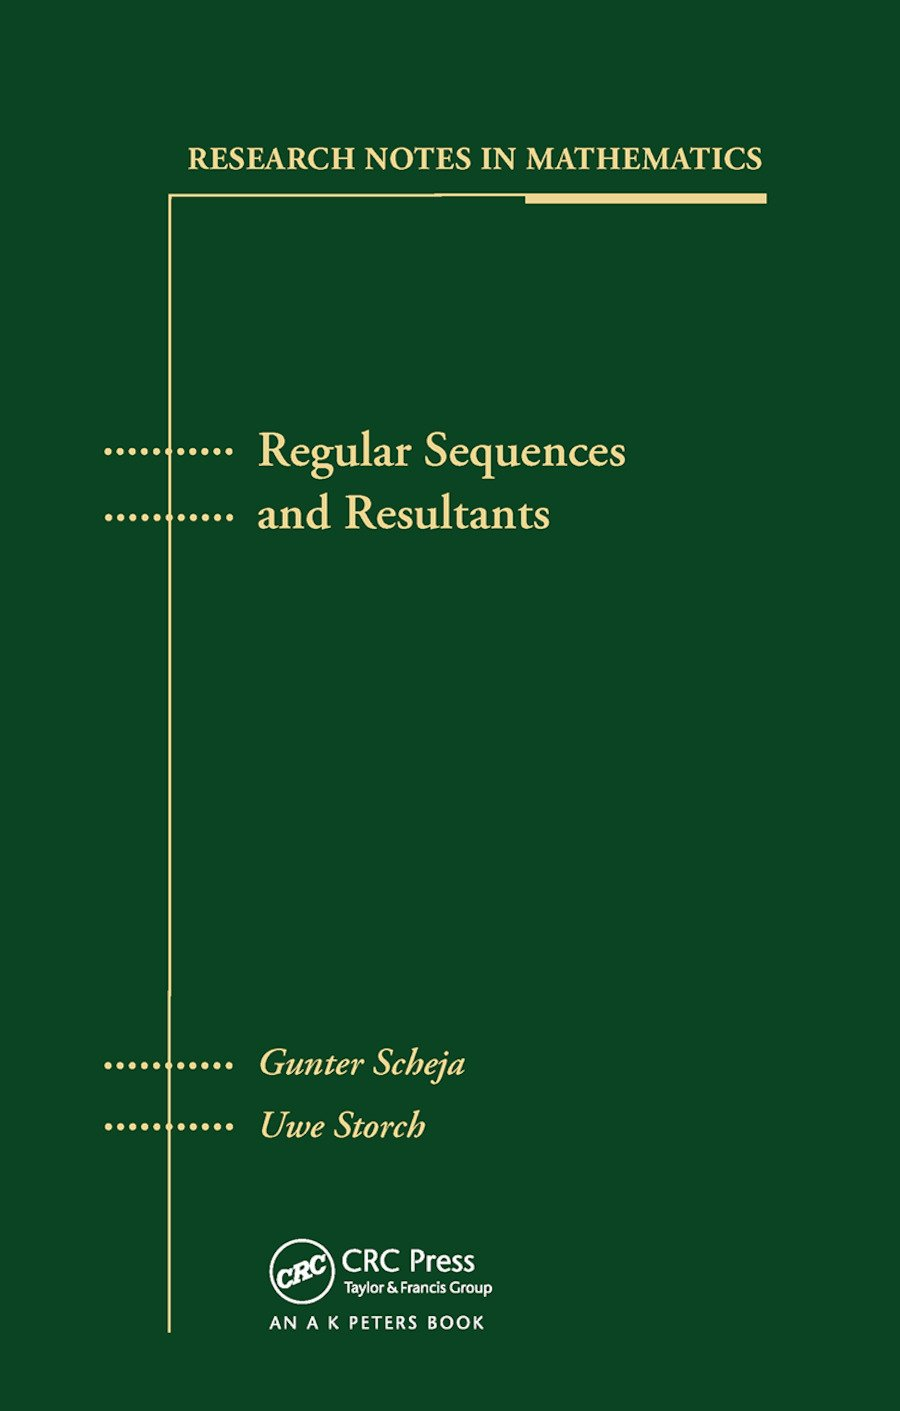 Regular Sequences and Resultants